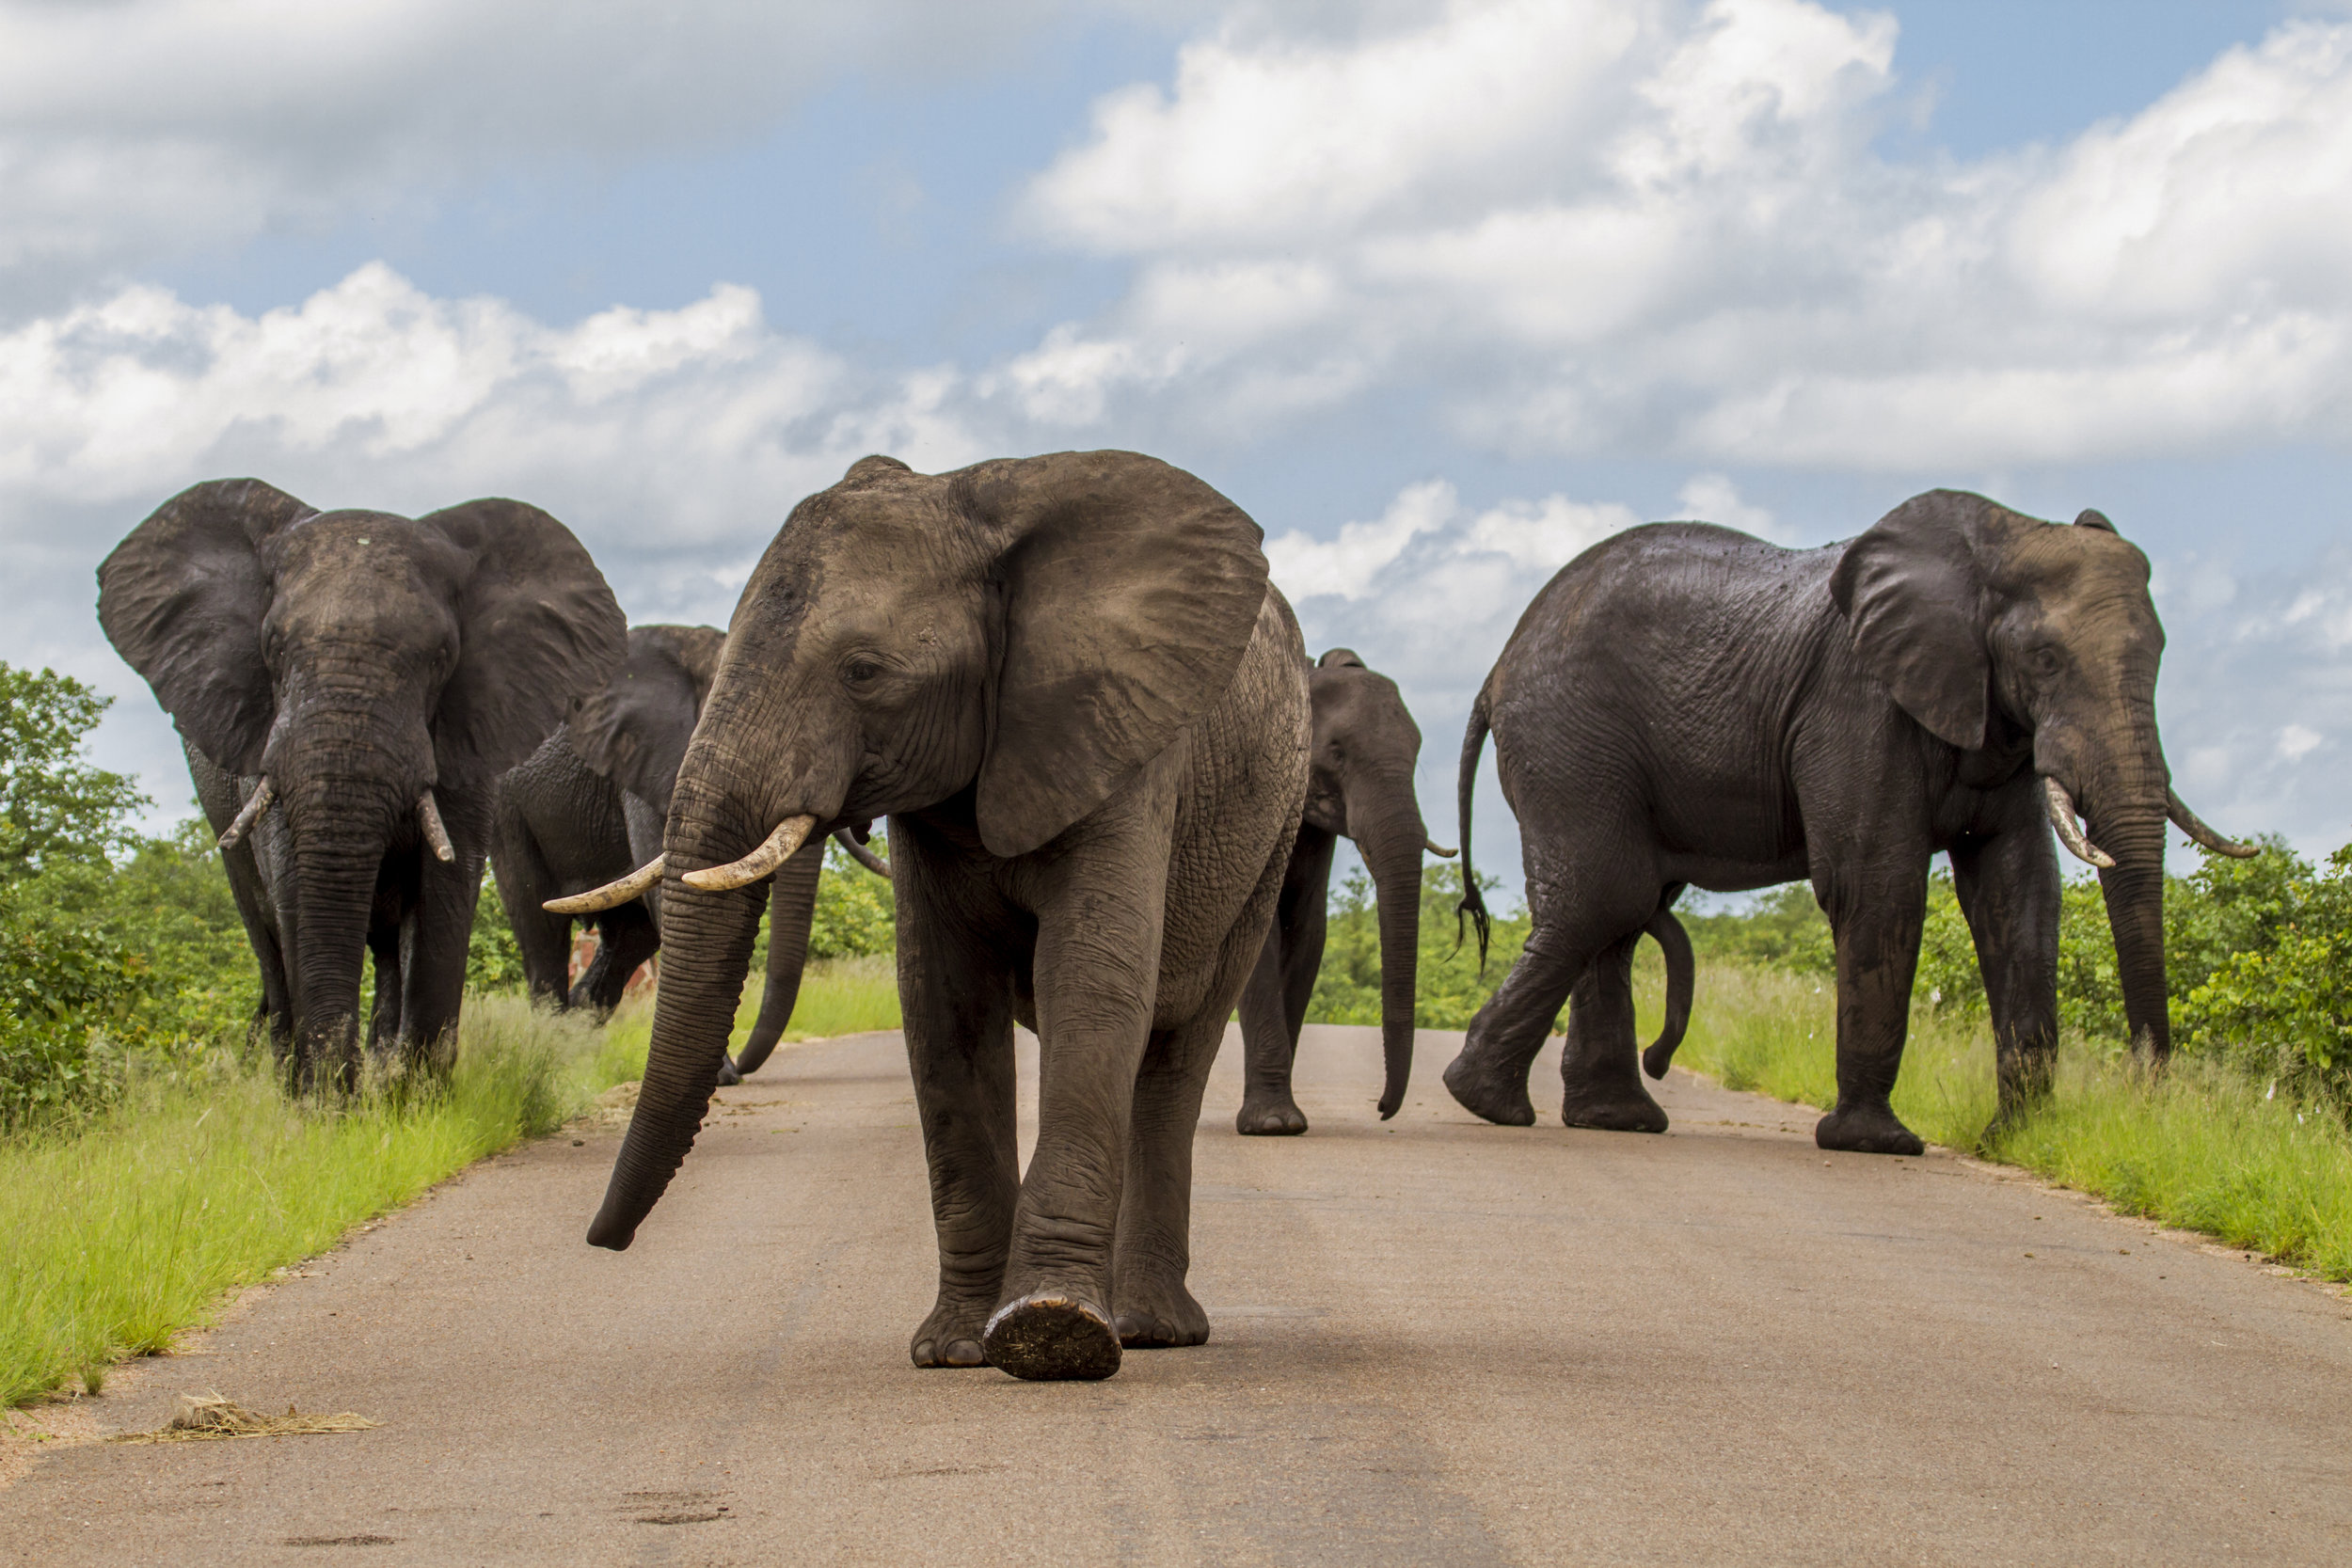 herd-of-african-bush-elephants-on-the-road-in-Kruger-park-838476676_5184x3456.jpeg